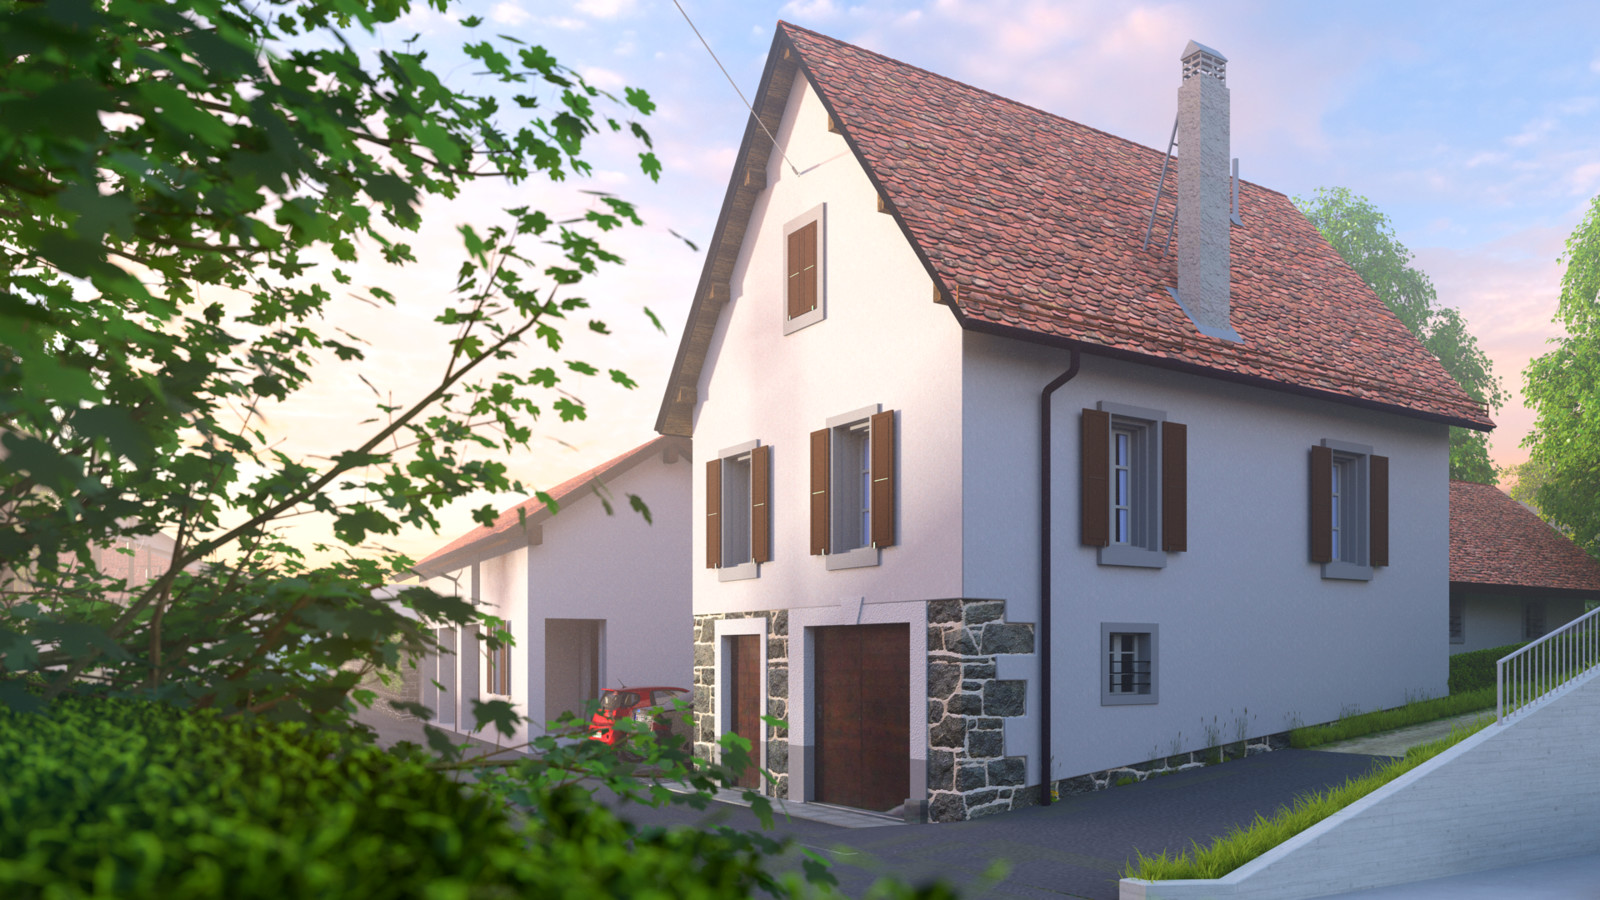 SketchUp + Thea Render  Little Swiss House à Vullierens (Day break) with rendered morning mist/fog  Vullierens complete 02 SUv2016-Scene 28A Rise